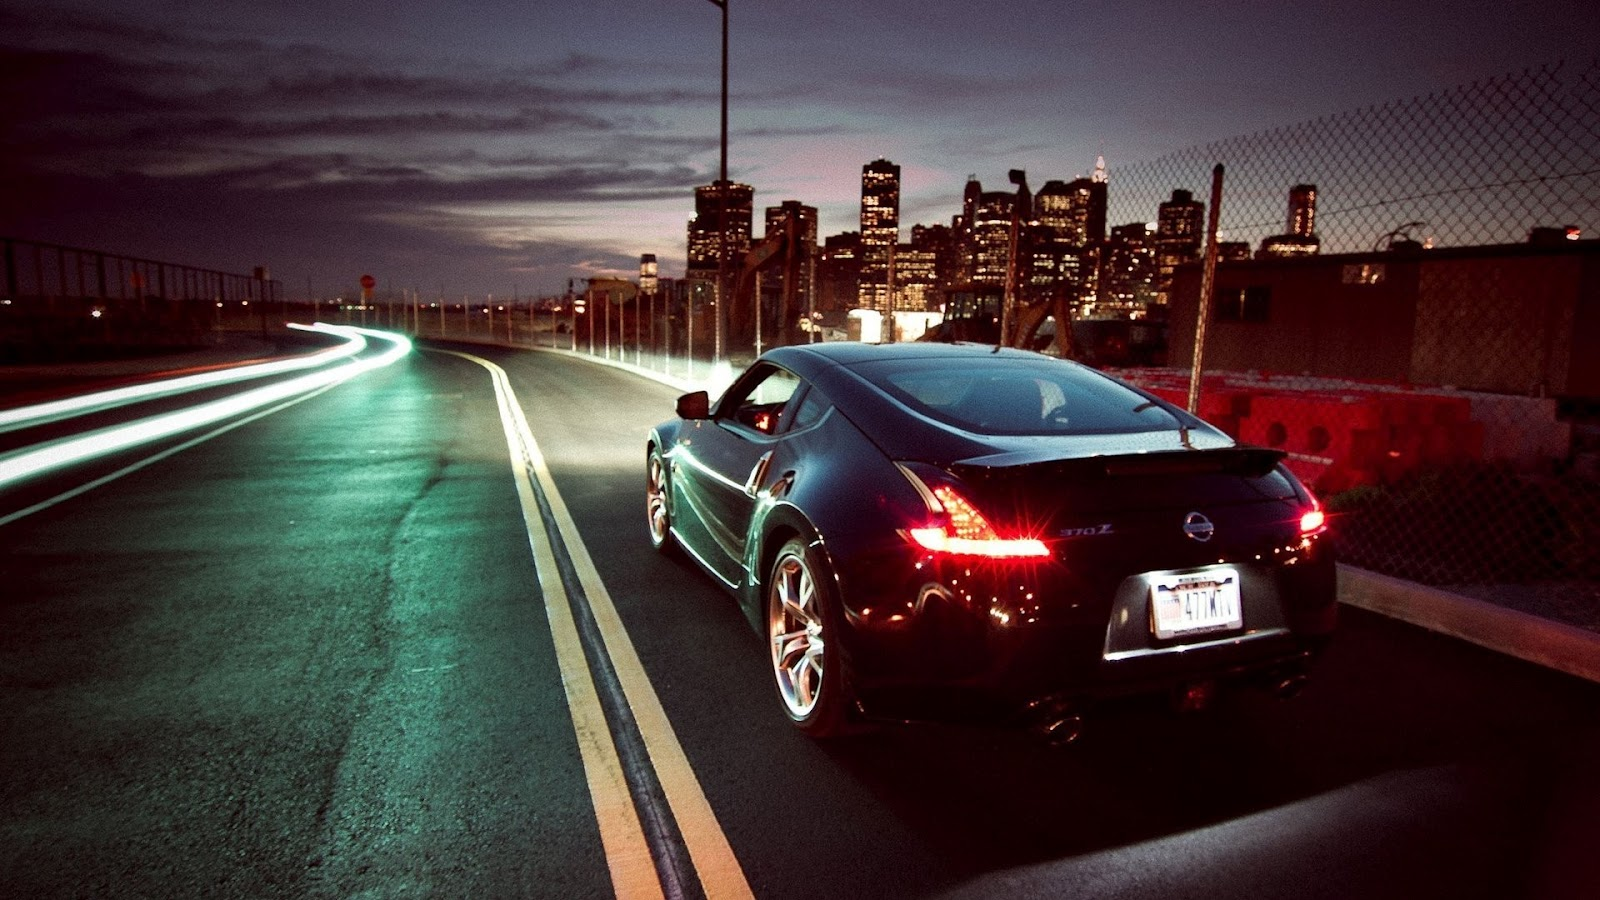 Great Wallpaper Night Car - Nissan_370Z_Skyscrapers_Night_Lights_Photography_HD_Wallpaper  Best Photo Reference.jpg